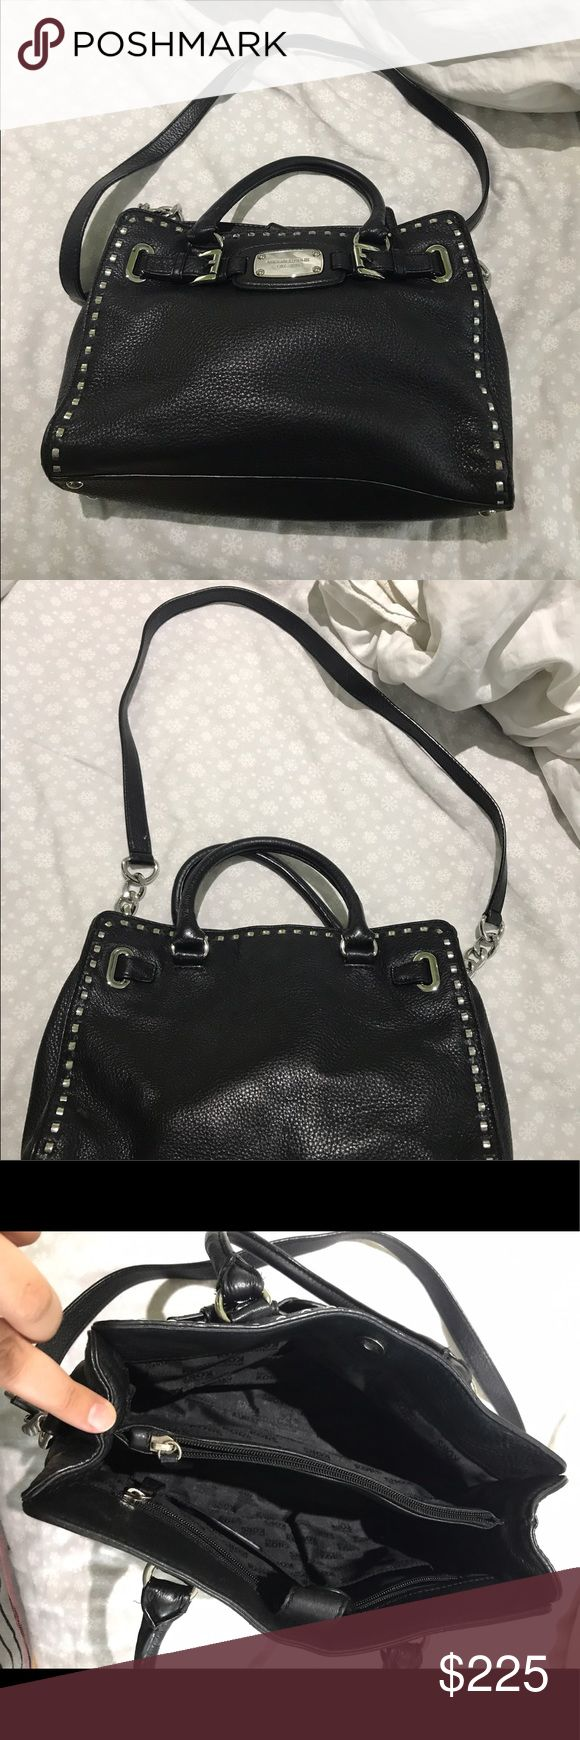 Michael Kors Black studied silver handbag purse In amazing condition and has some scratches due to wear. No rips! It is 9 in tall and 13 in in length. Comes with a extender strap or just use as a top handle. I paid $300 for it! Michael Kors Bags Shoulder Bags